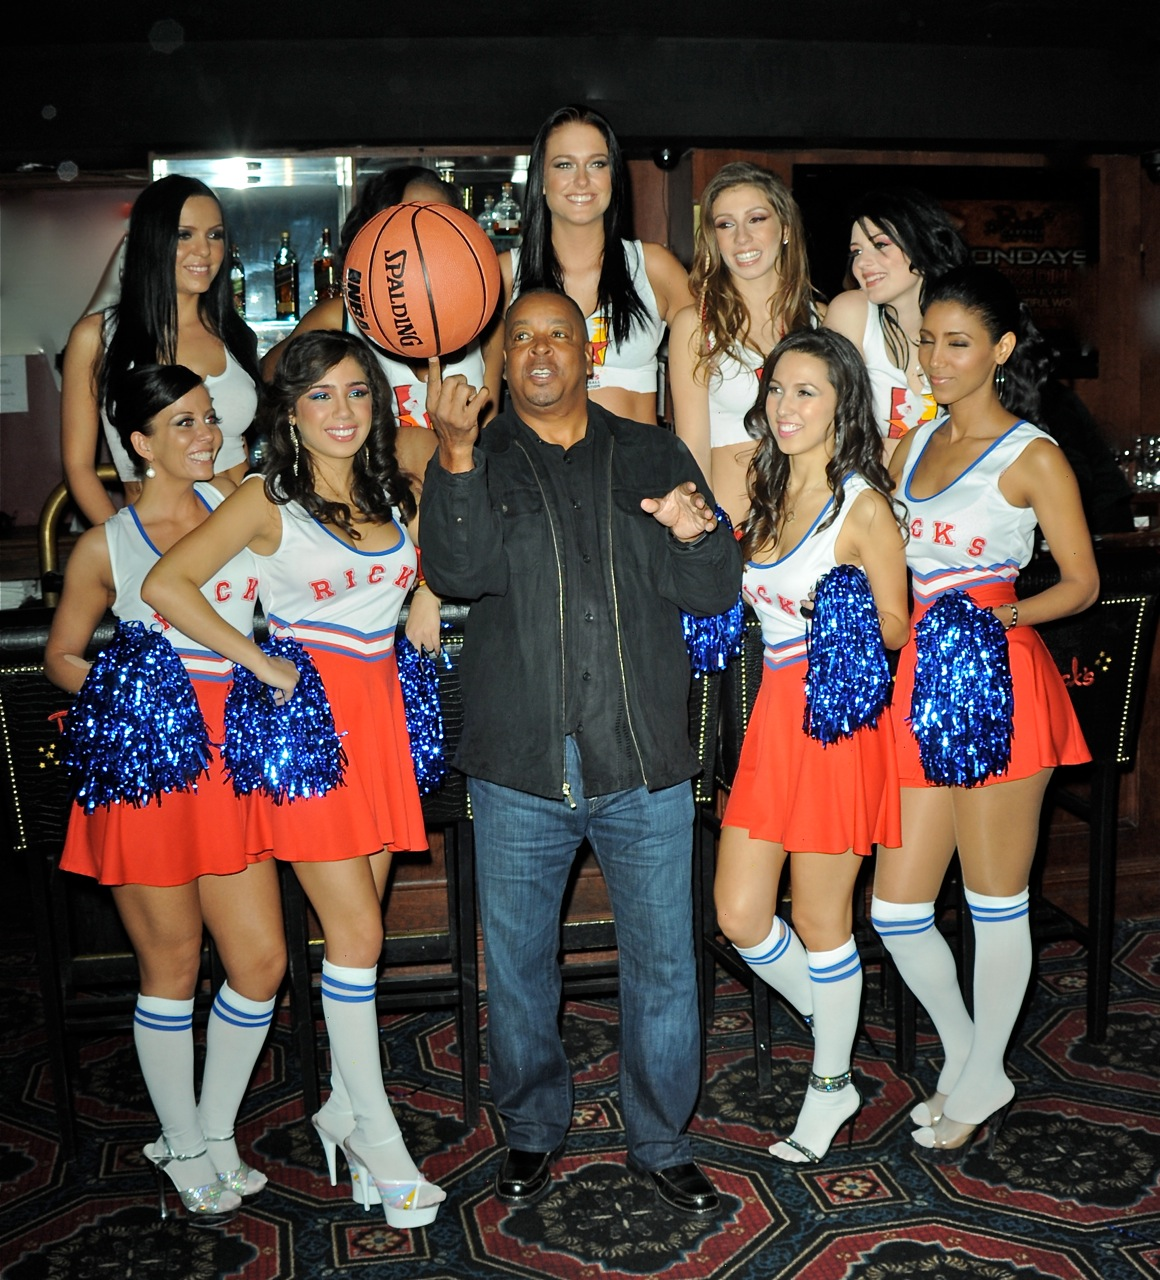 Spud Webb To Coach Rick s Cabaret New York Stripper Basketball Team